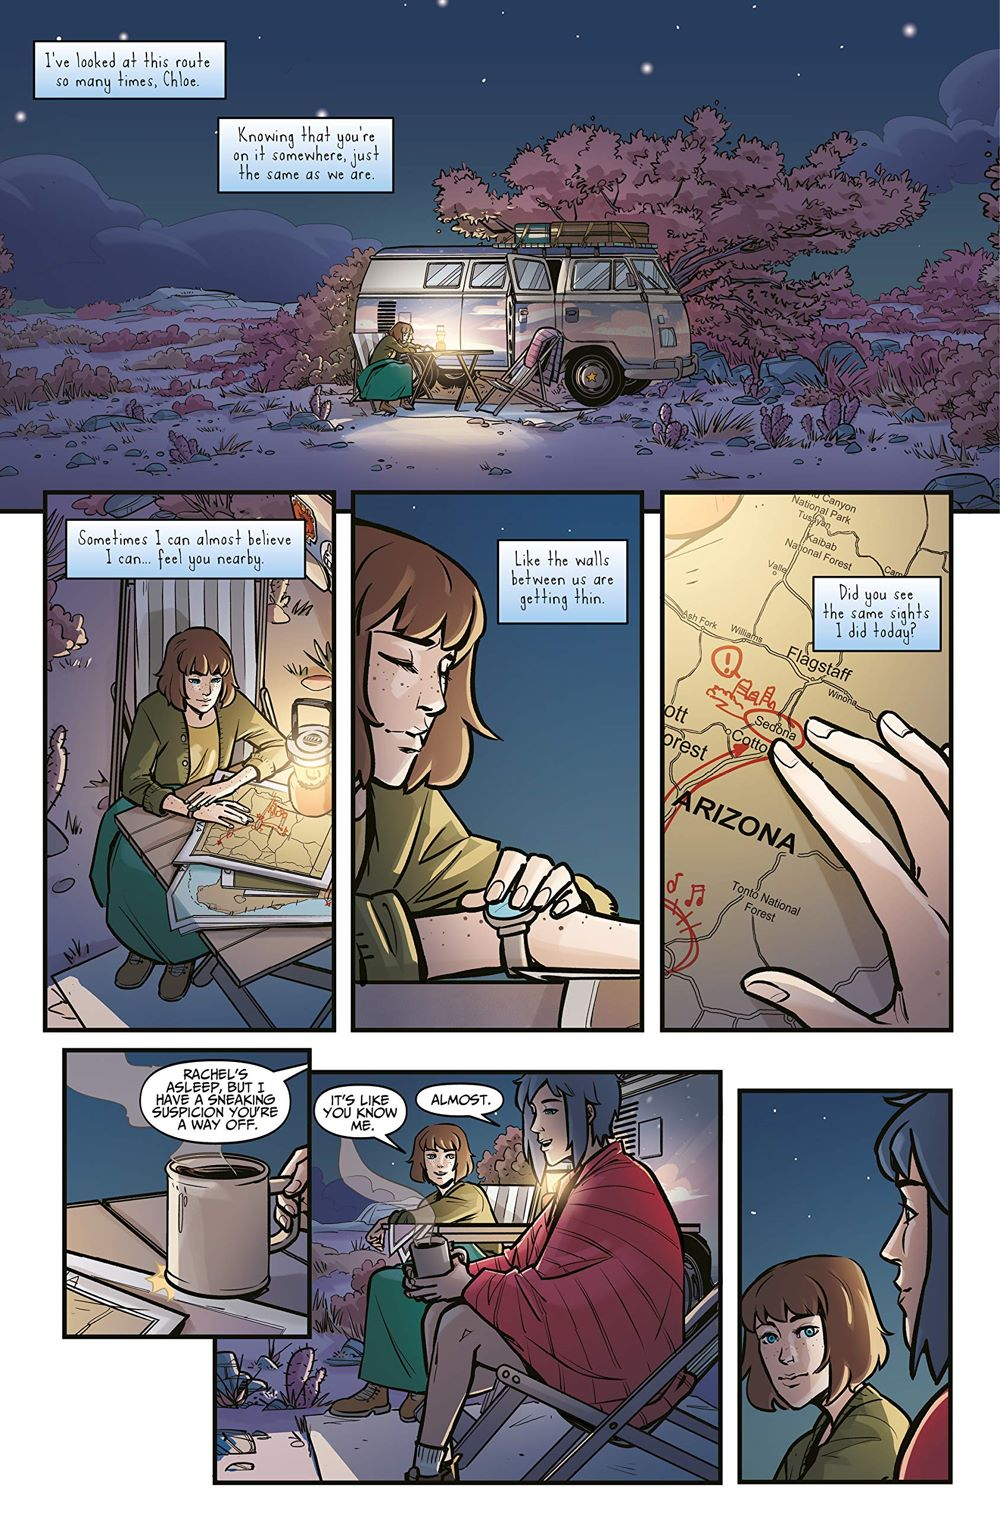 Life-is-Strange-4-spread-3 ComicList Previews: LIFE IS STRANGE VOLUME 4 PARTNERS IN TIME TRACKS TP